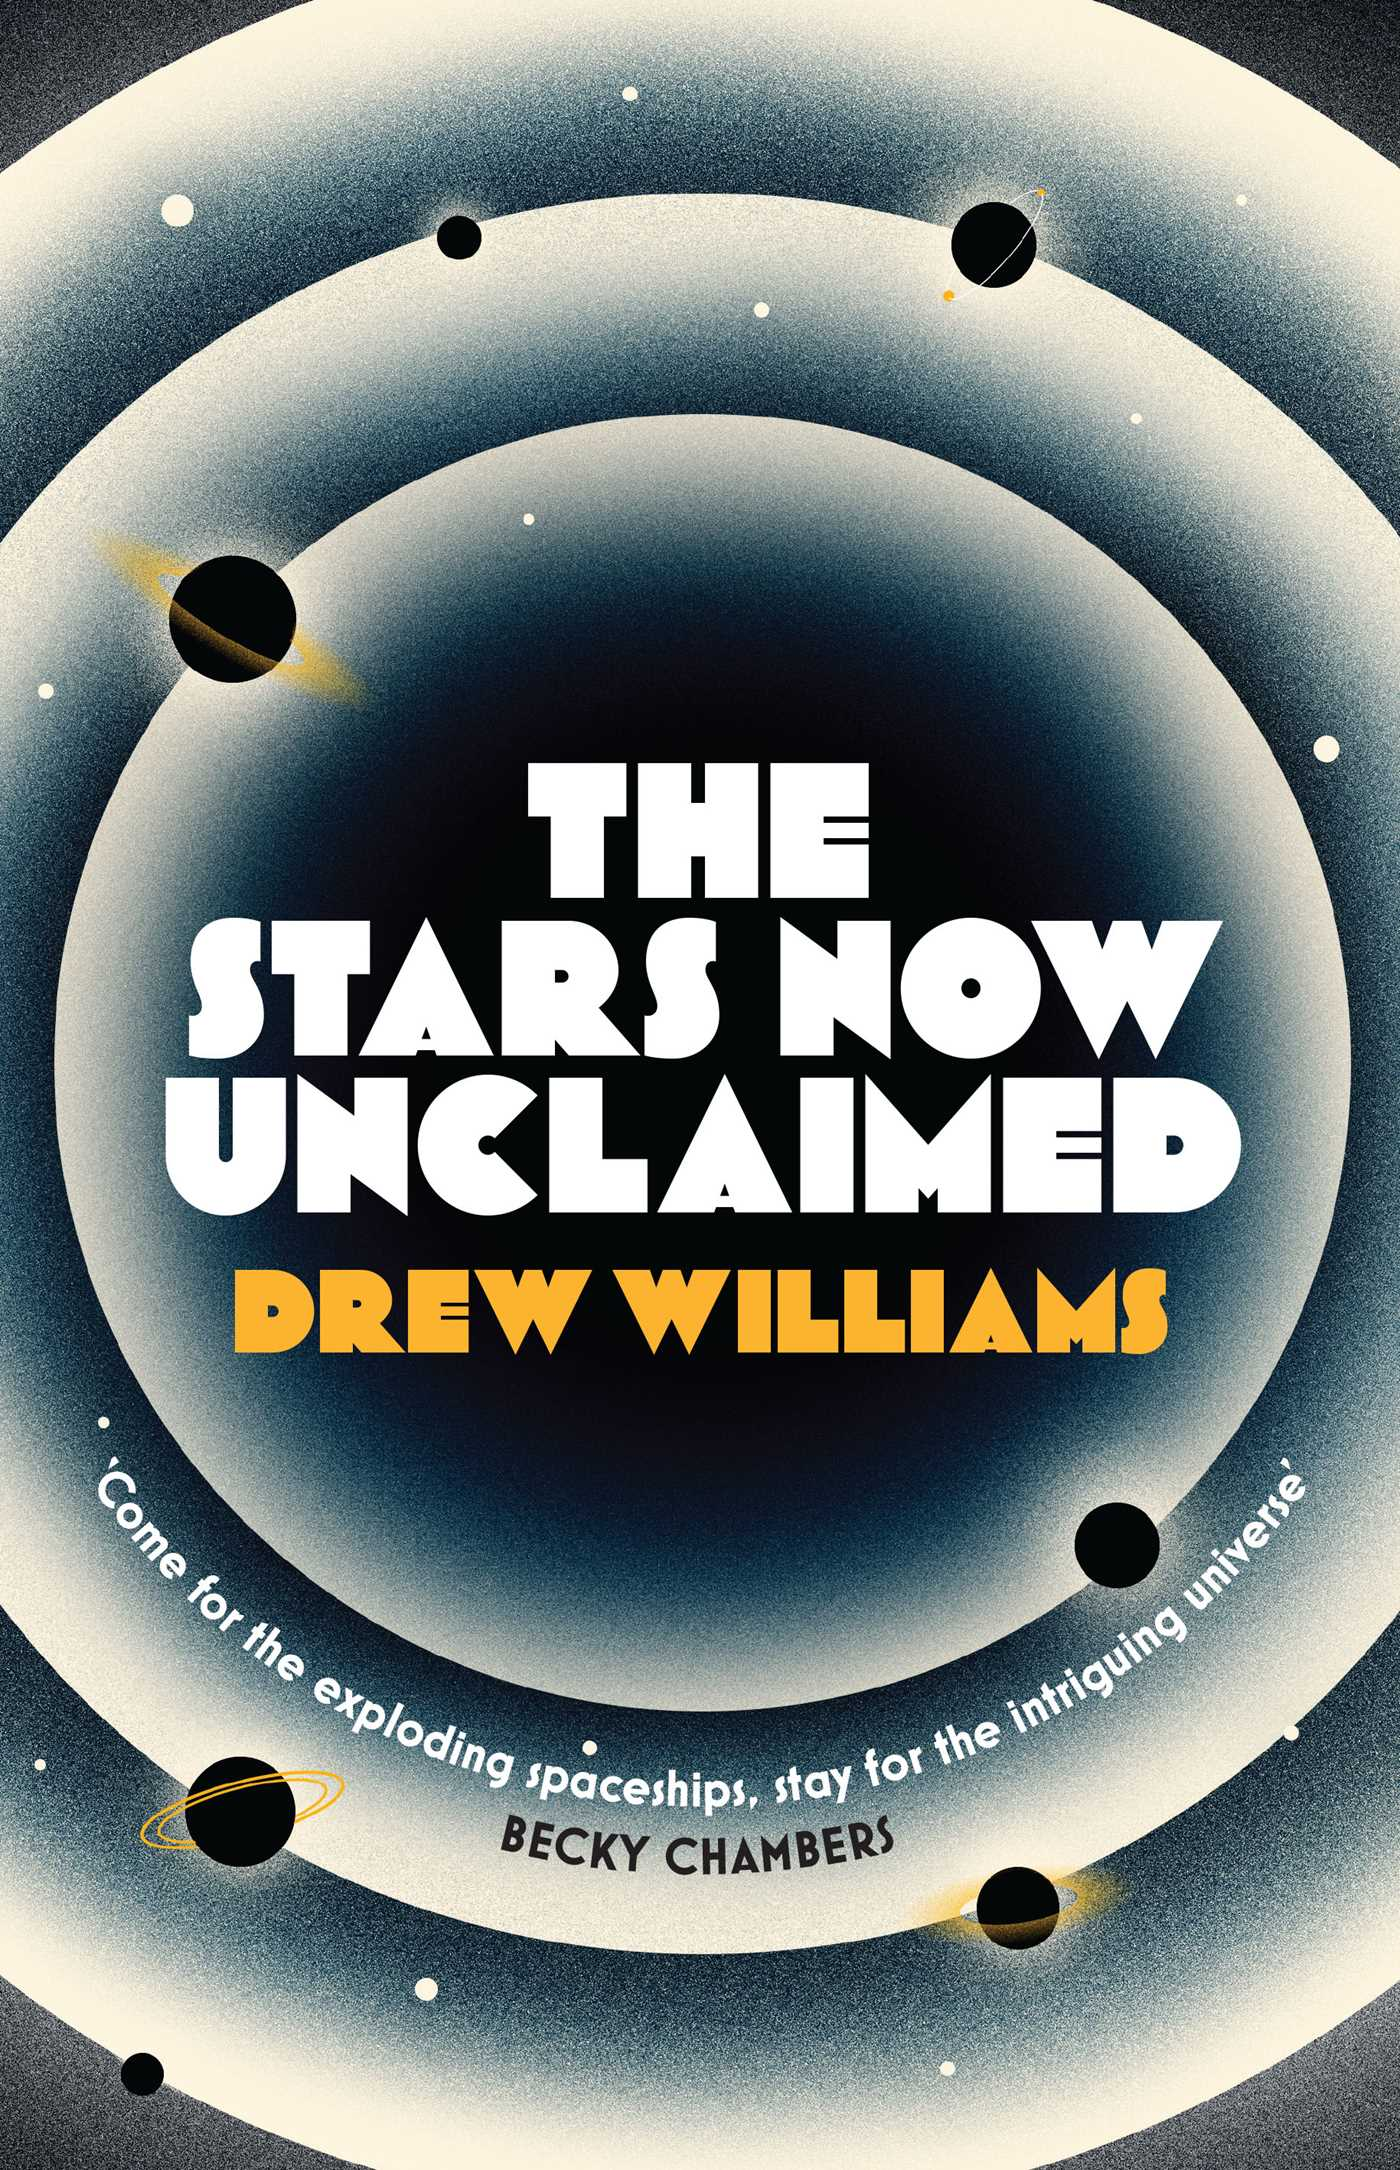 The stars now unclaimed 9781471171116 hr